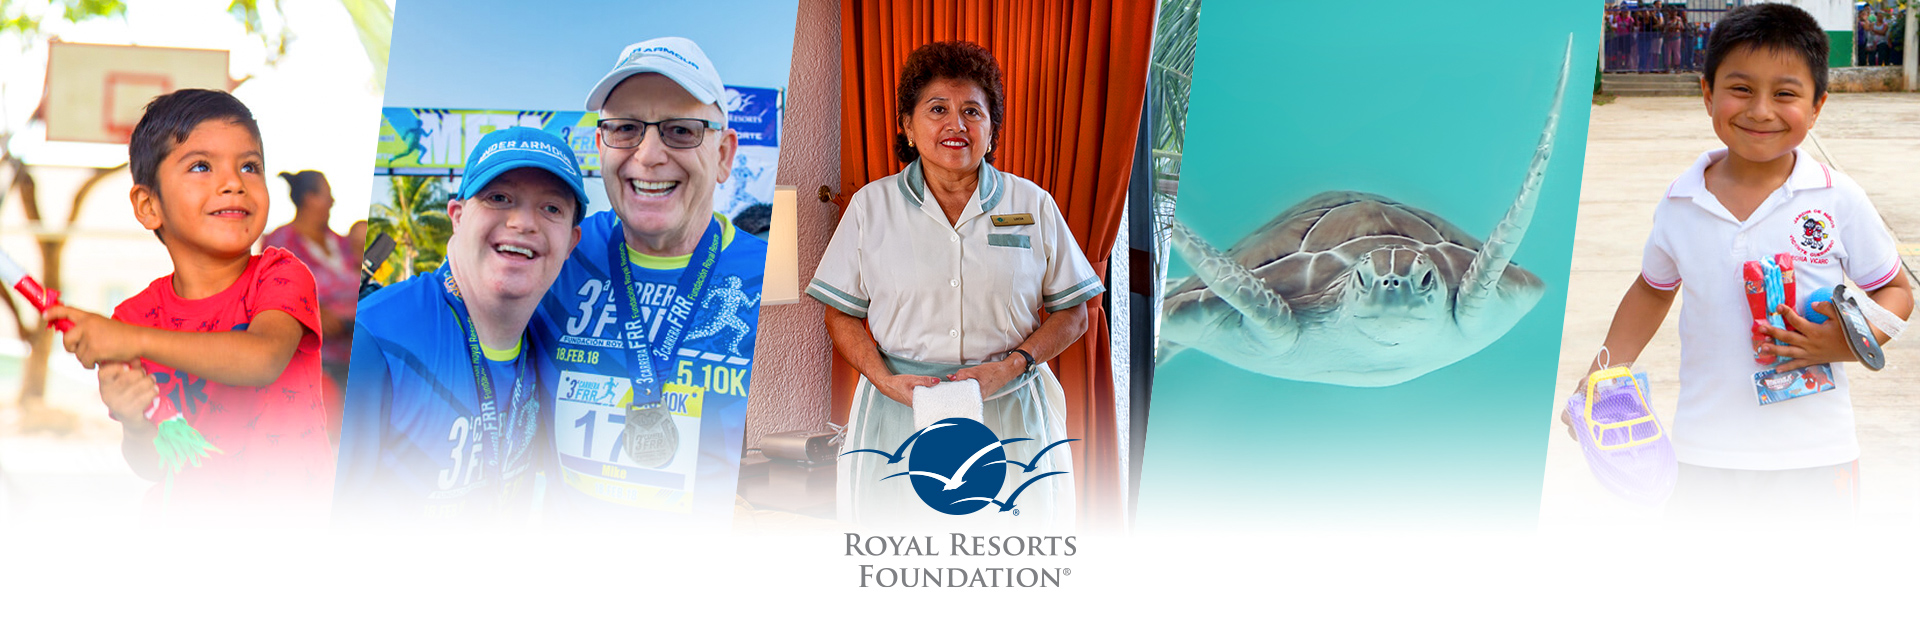 Royal Resorts Foundation